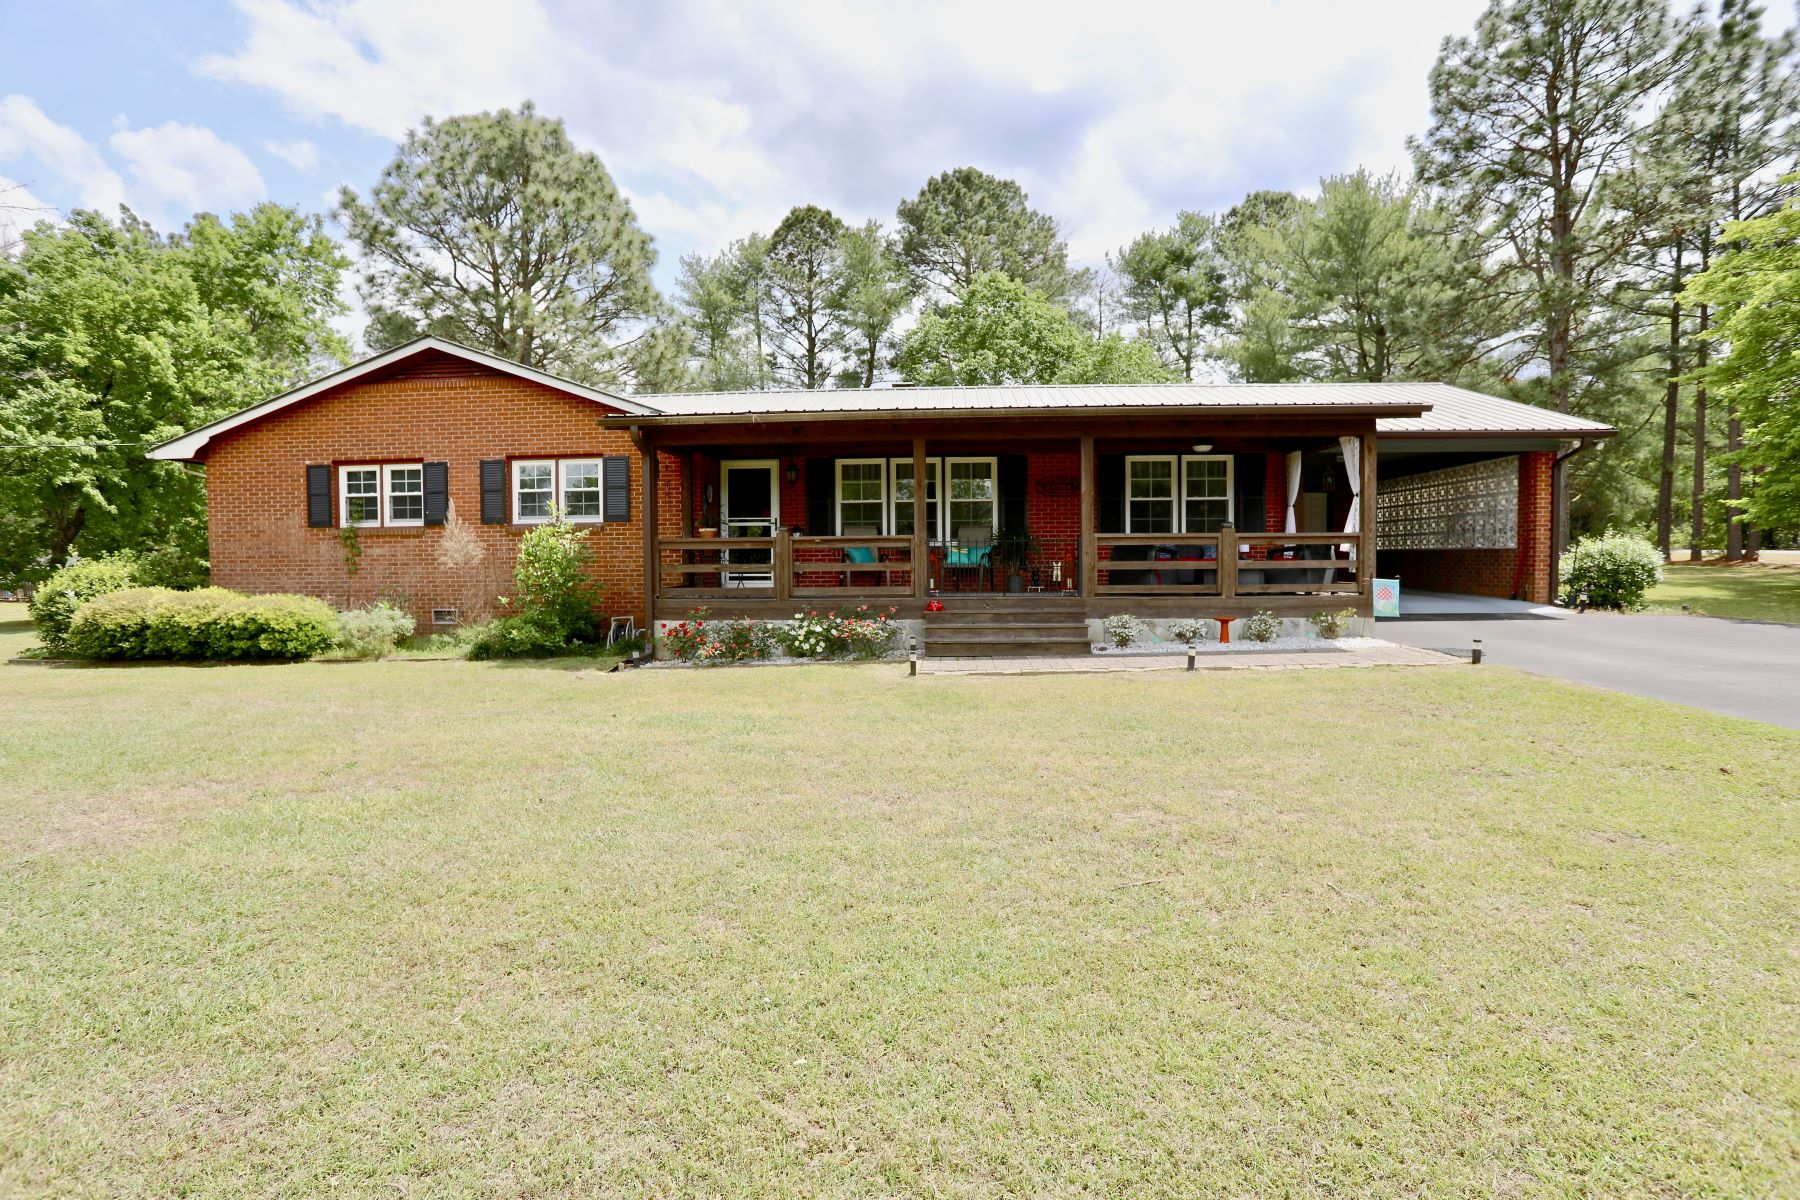 Single Family Homes for Sale at 275 Arrow Wood Rd. Carthage, North Carolina 28327 United States